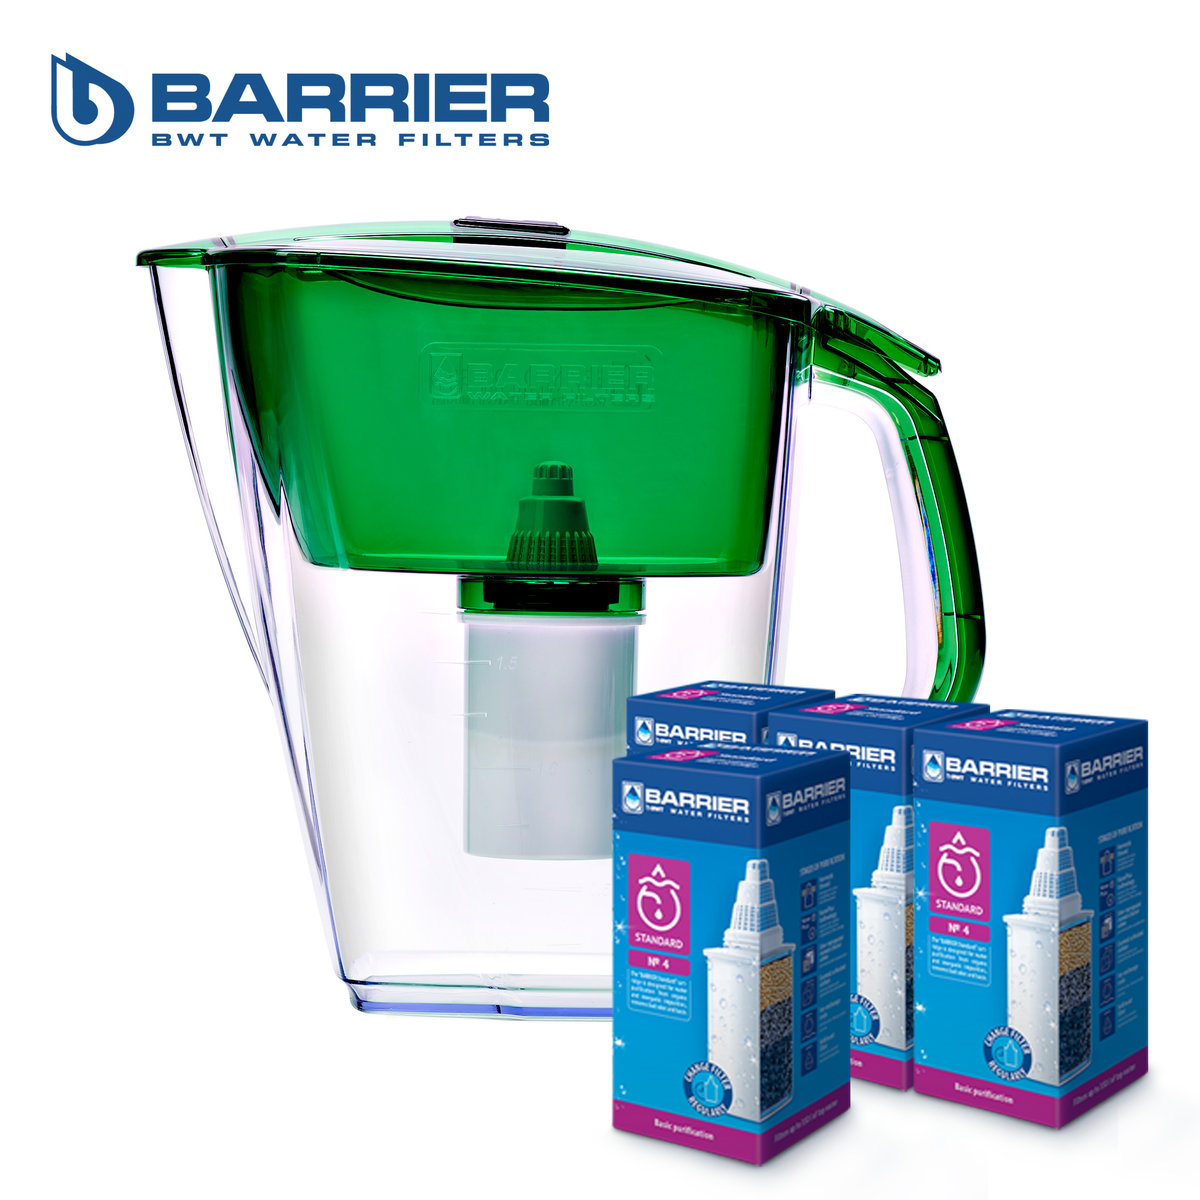 【Grand Neo】4.2L Water Pitcher(Green) + 4pcs Standard Cartridge